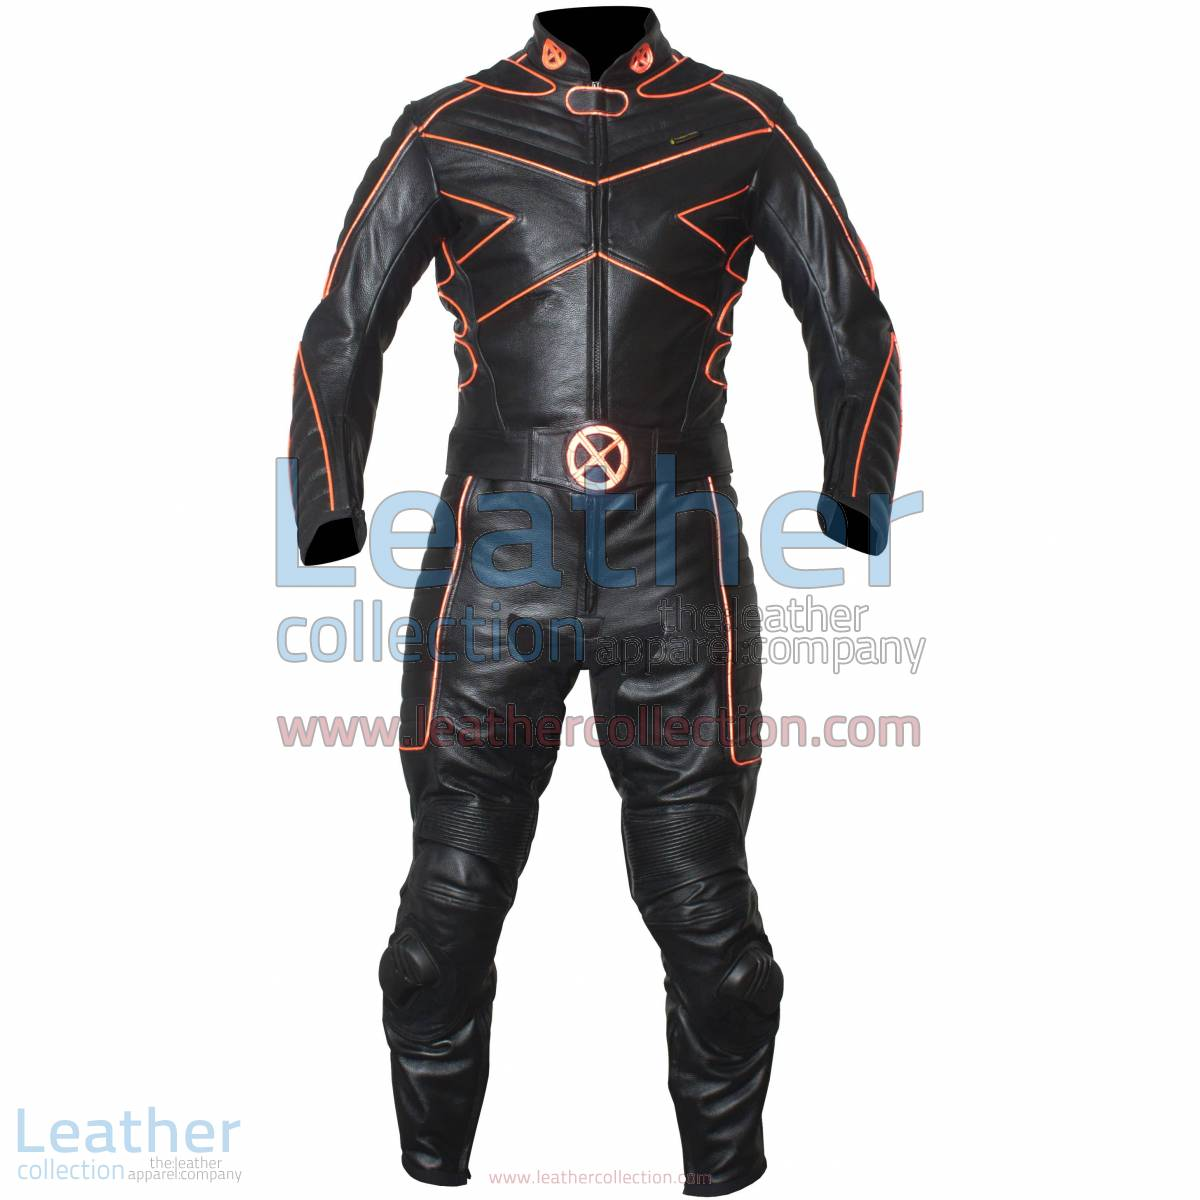 X-MEN Motorcycle Racing Leather Suit with Orange Piping   Motorcycle racing suit,X-MEN suit